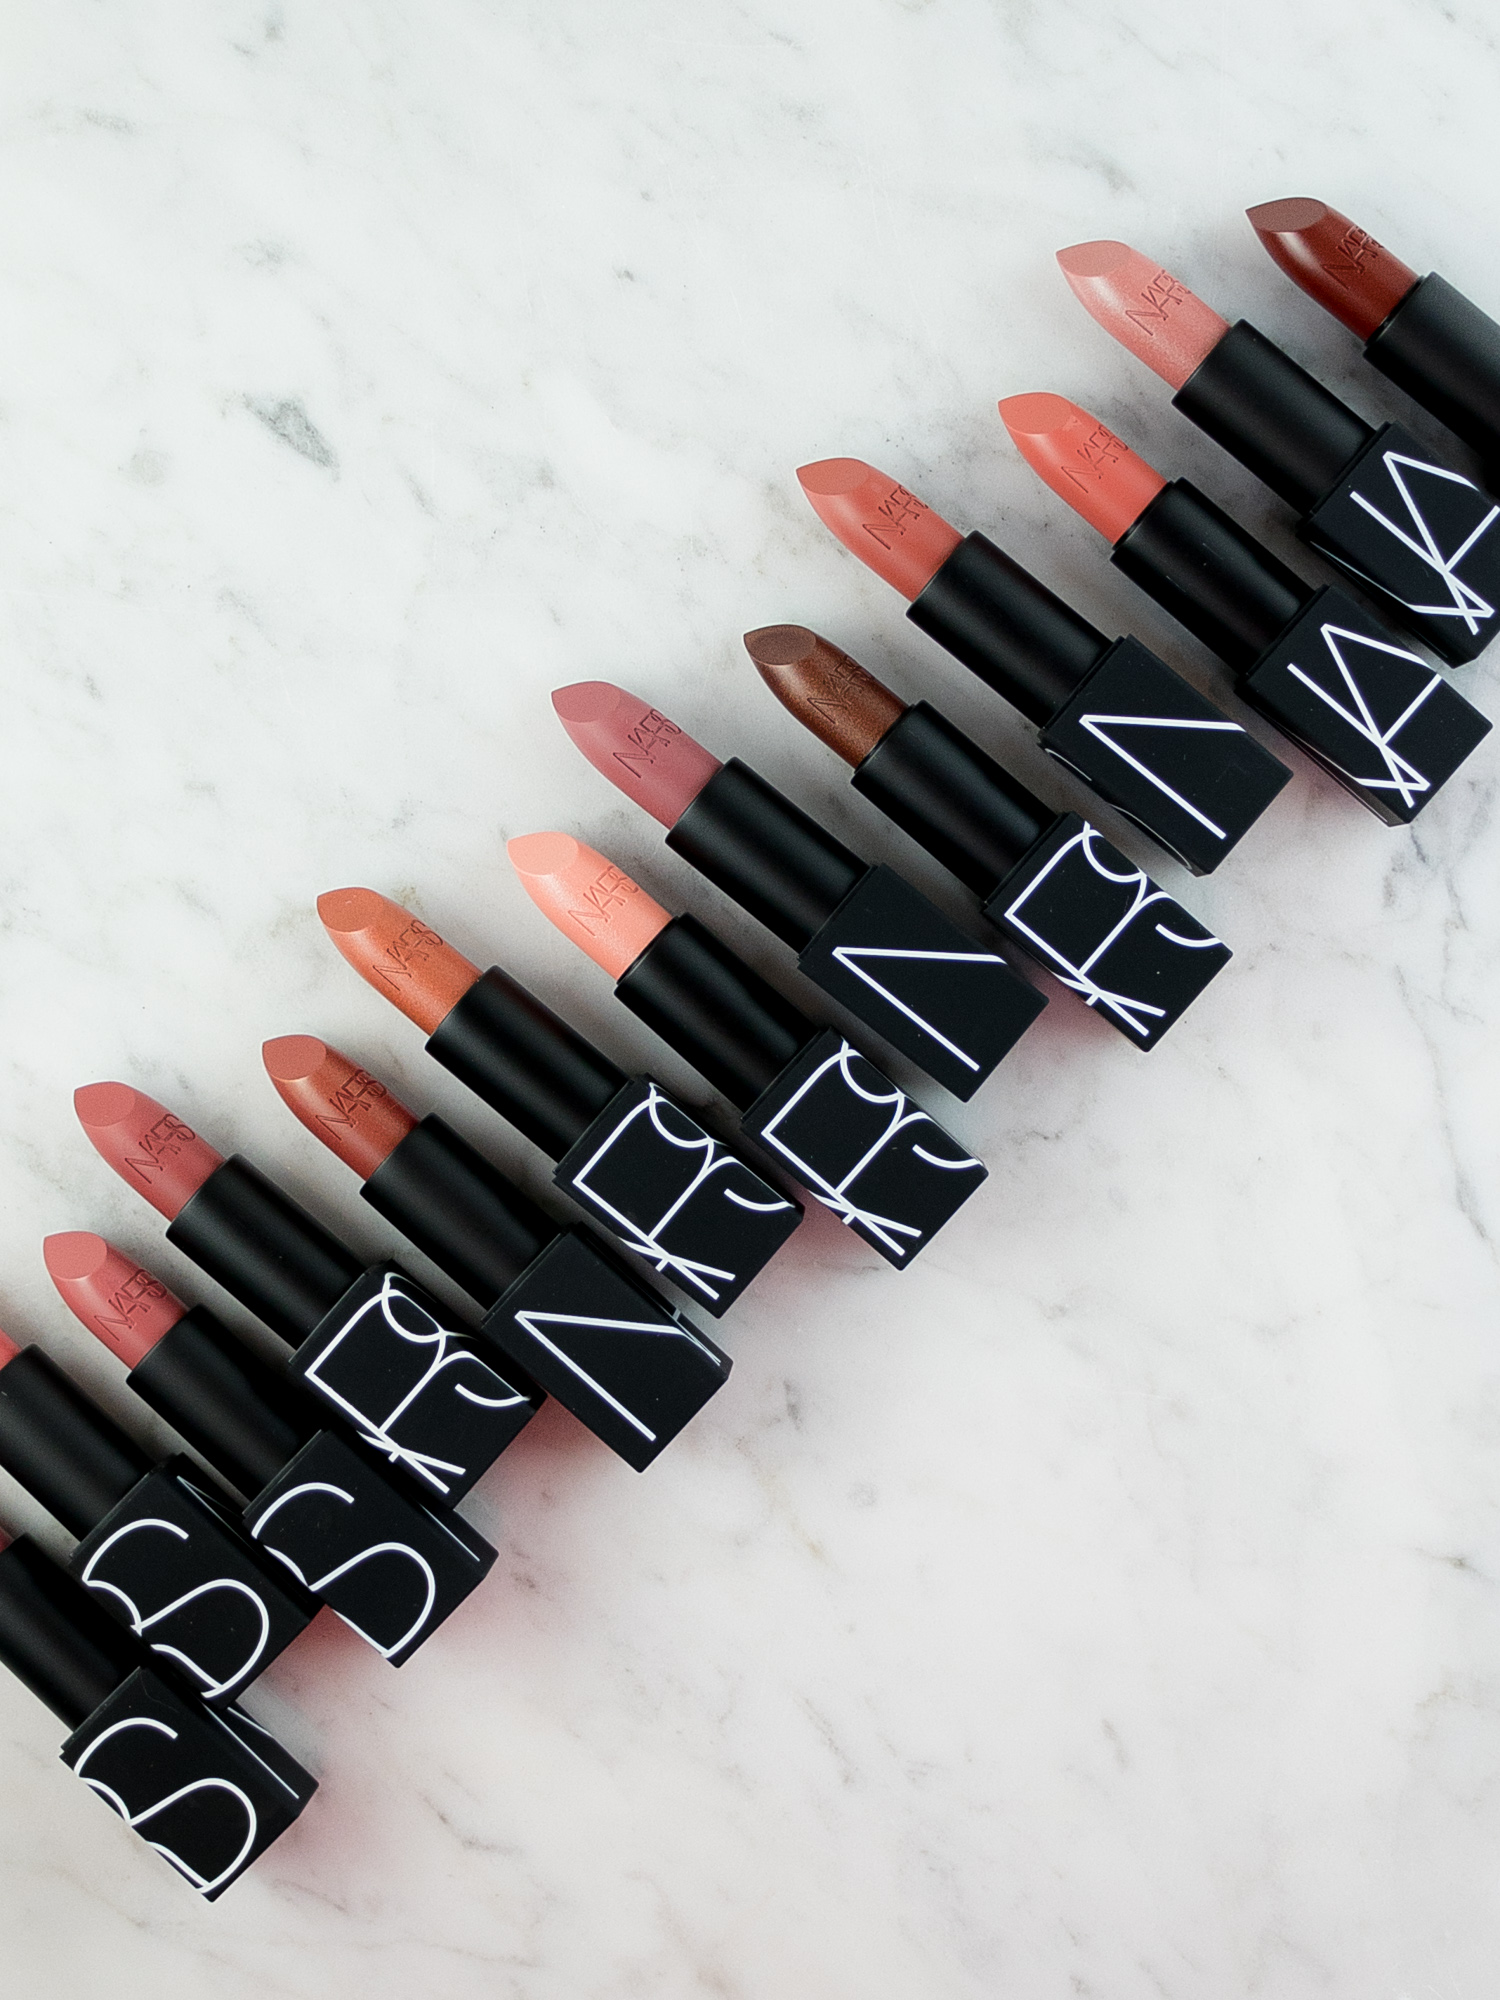 The Best Nude Lipsticks from NARS